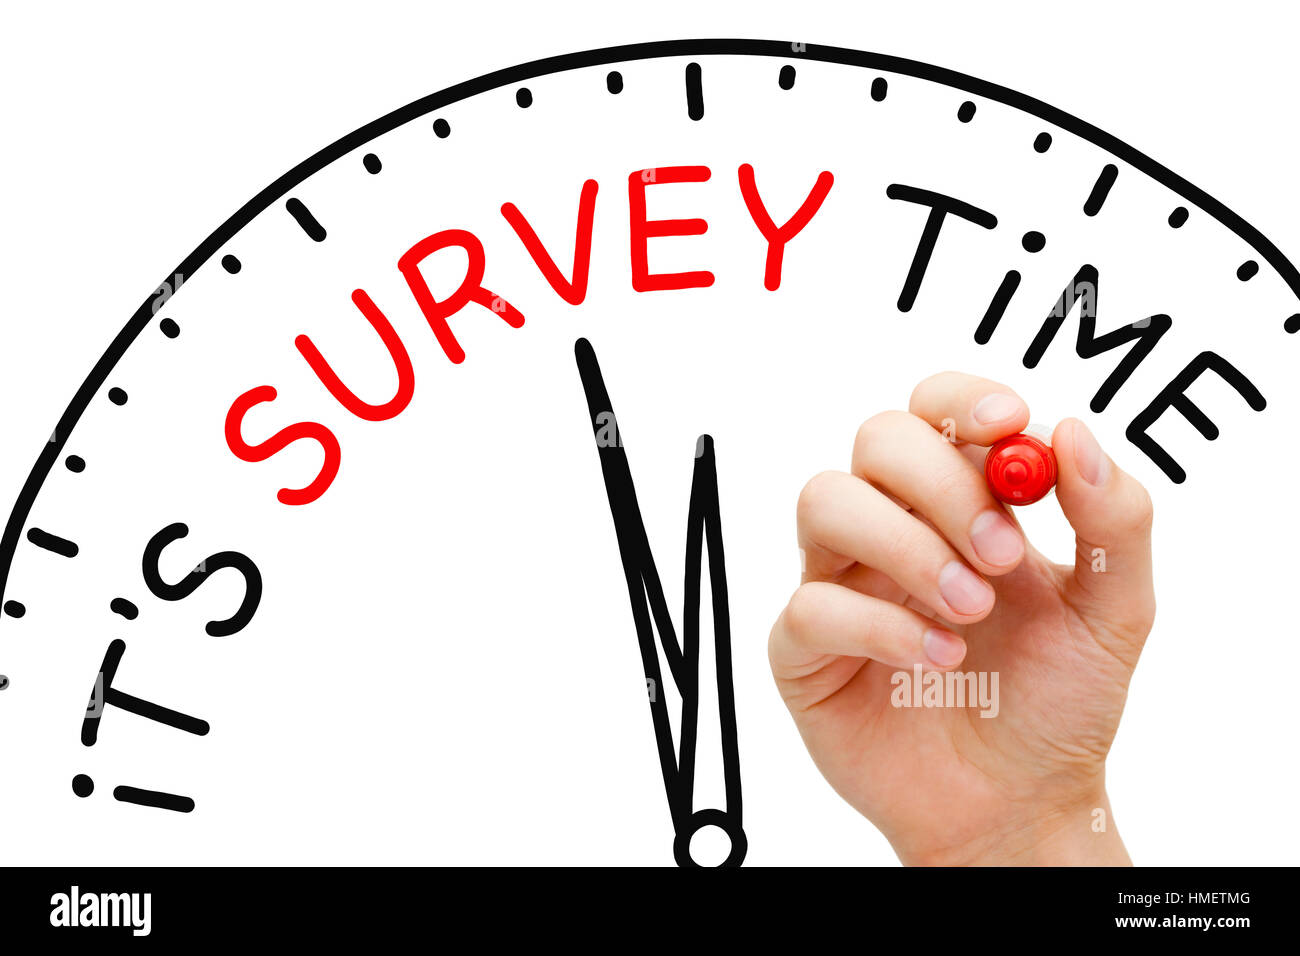 Hand writing It's Survey Time on drawn clock with marker pen on transparent glass board. - Stock Image